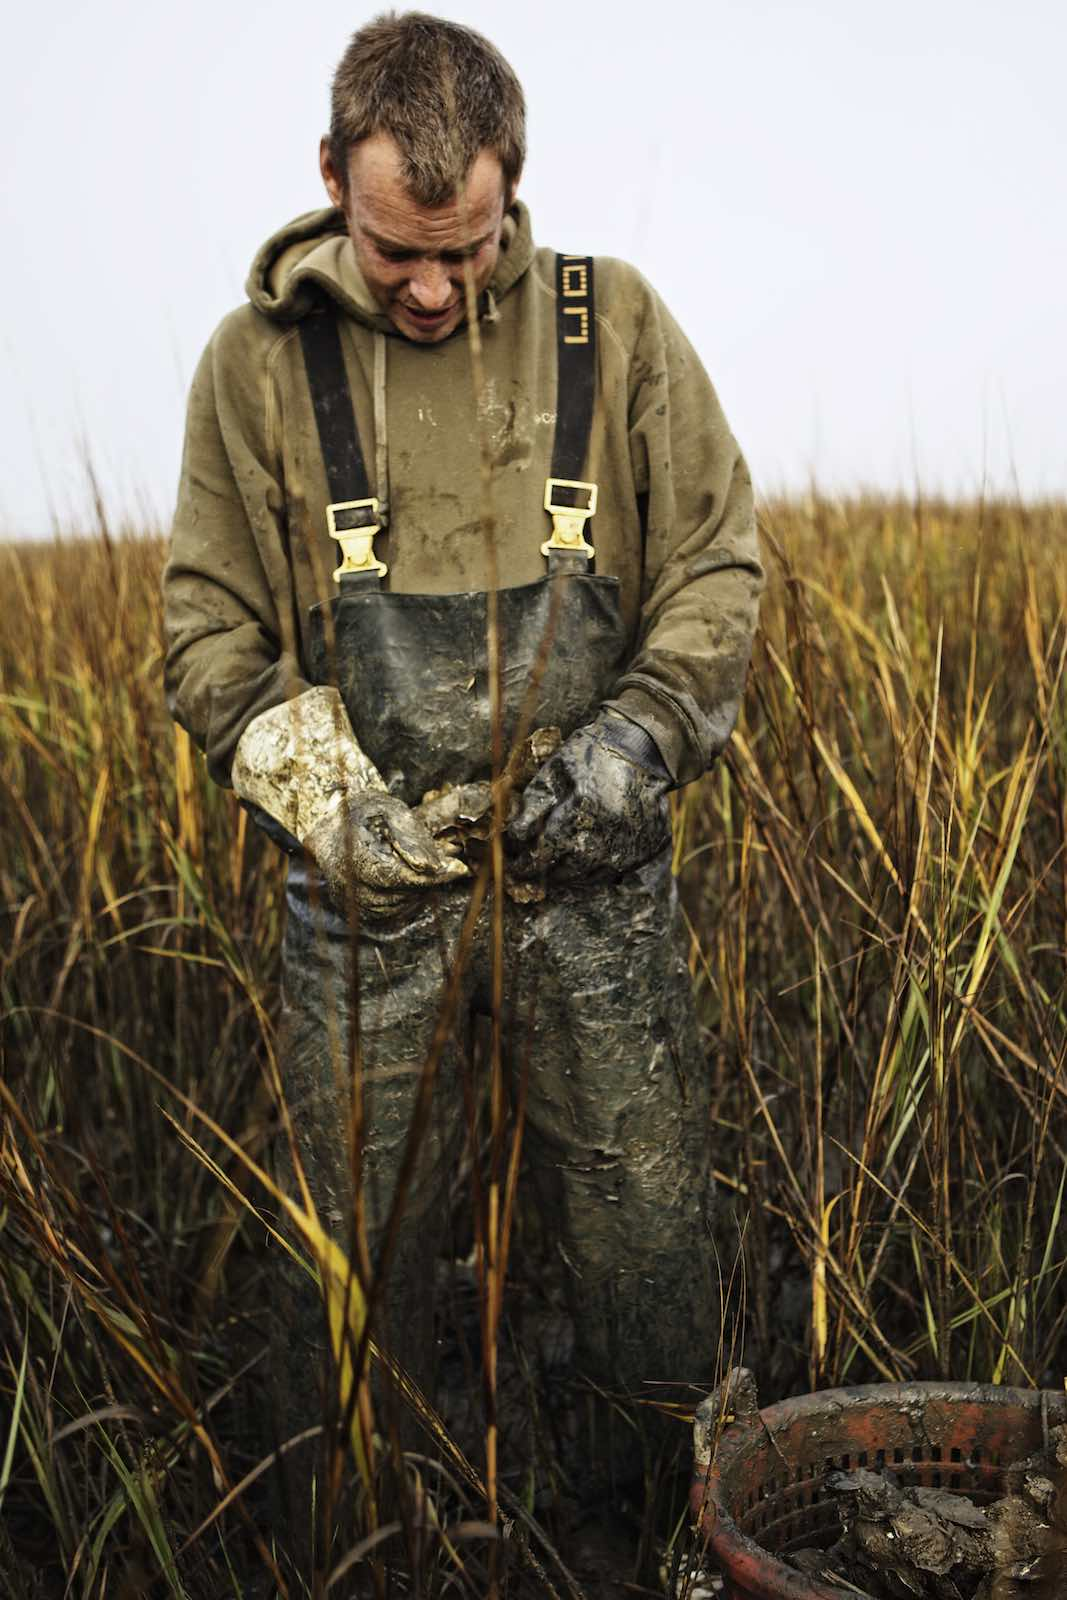 Fisherman standing in marsh grass collecting oysters.